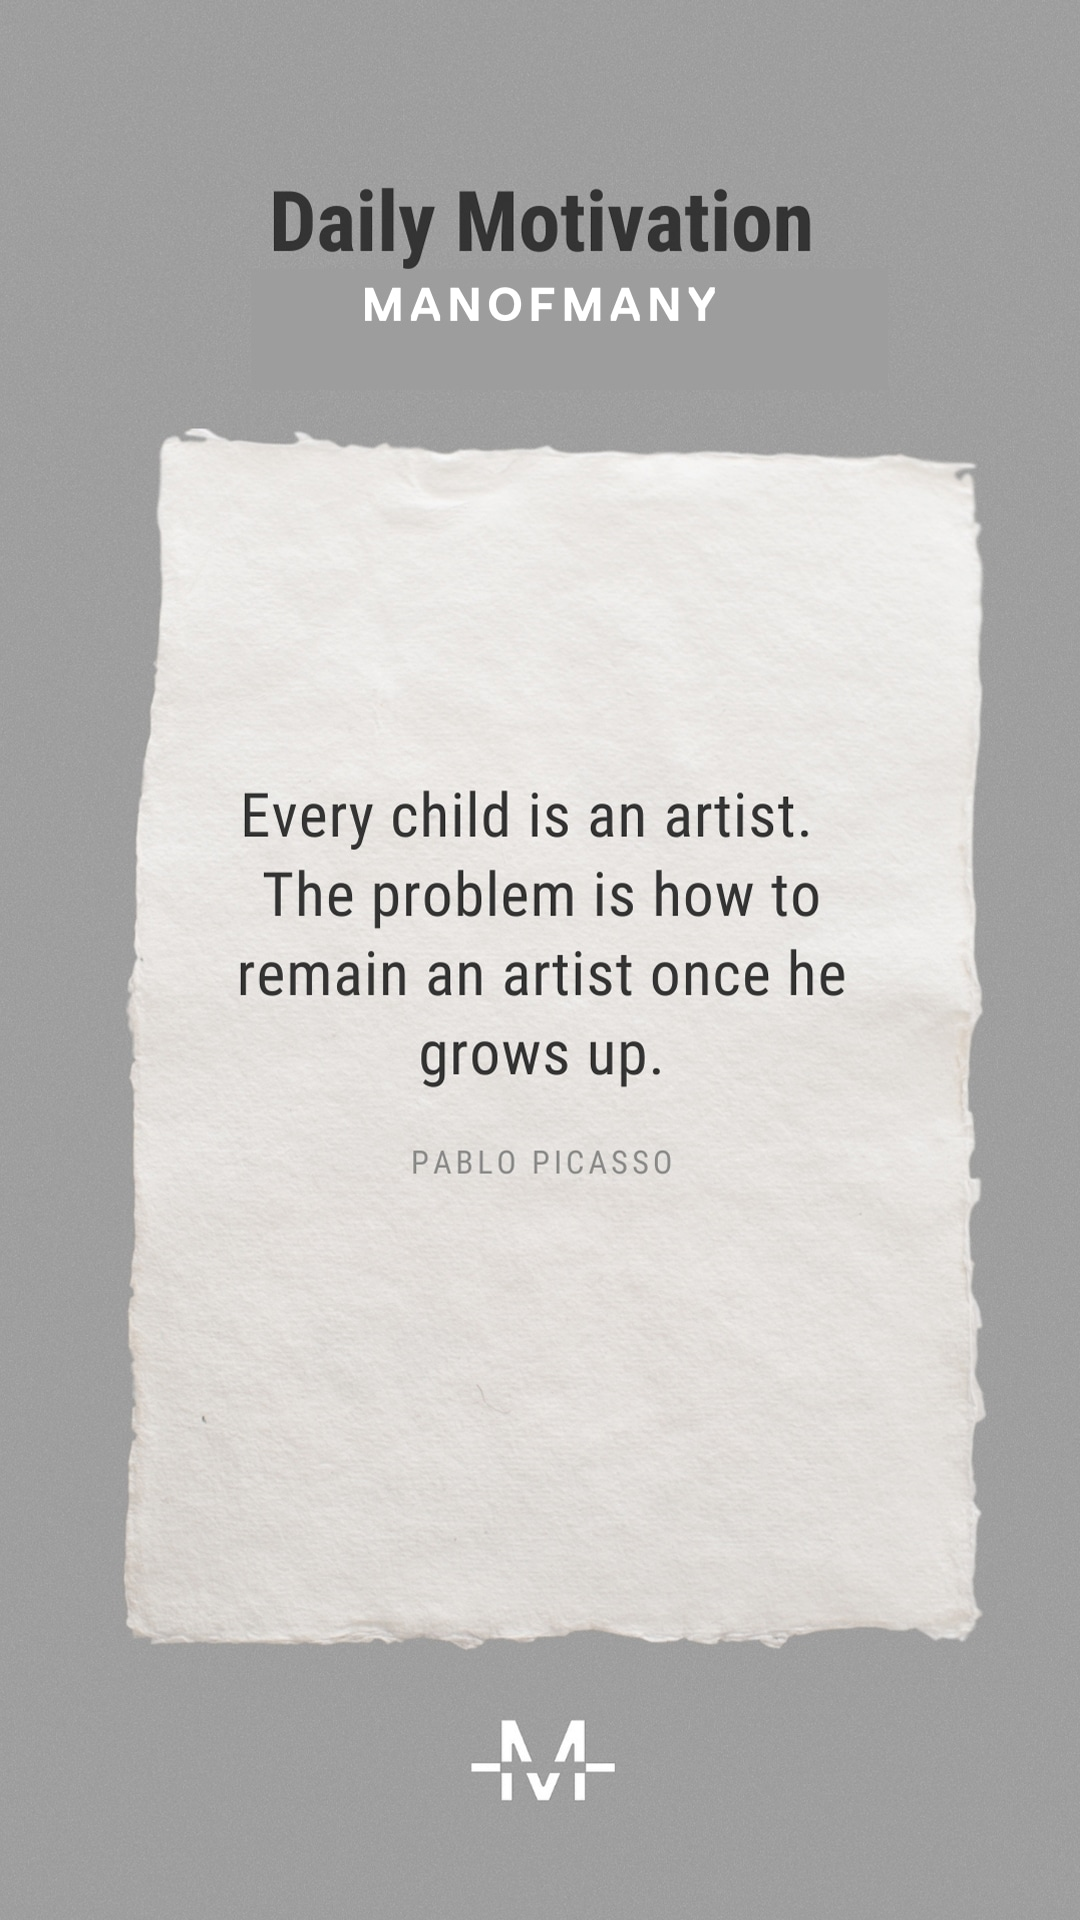 Every child is an artist. The problem is how to remain an artist once he grows up. –Pablo Picasso quote